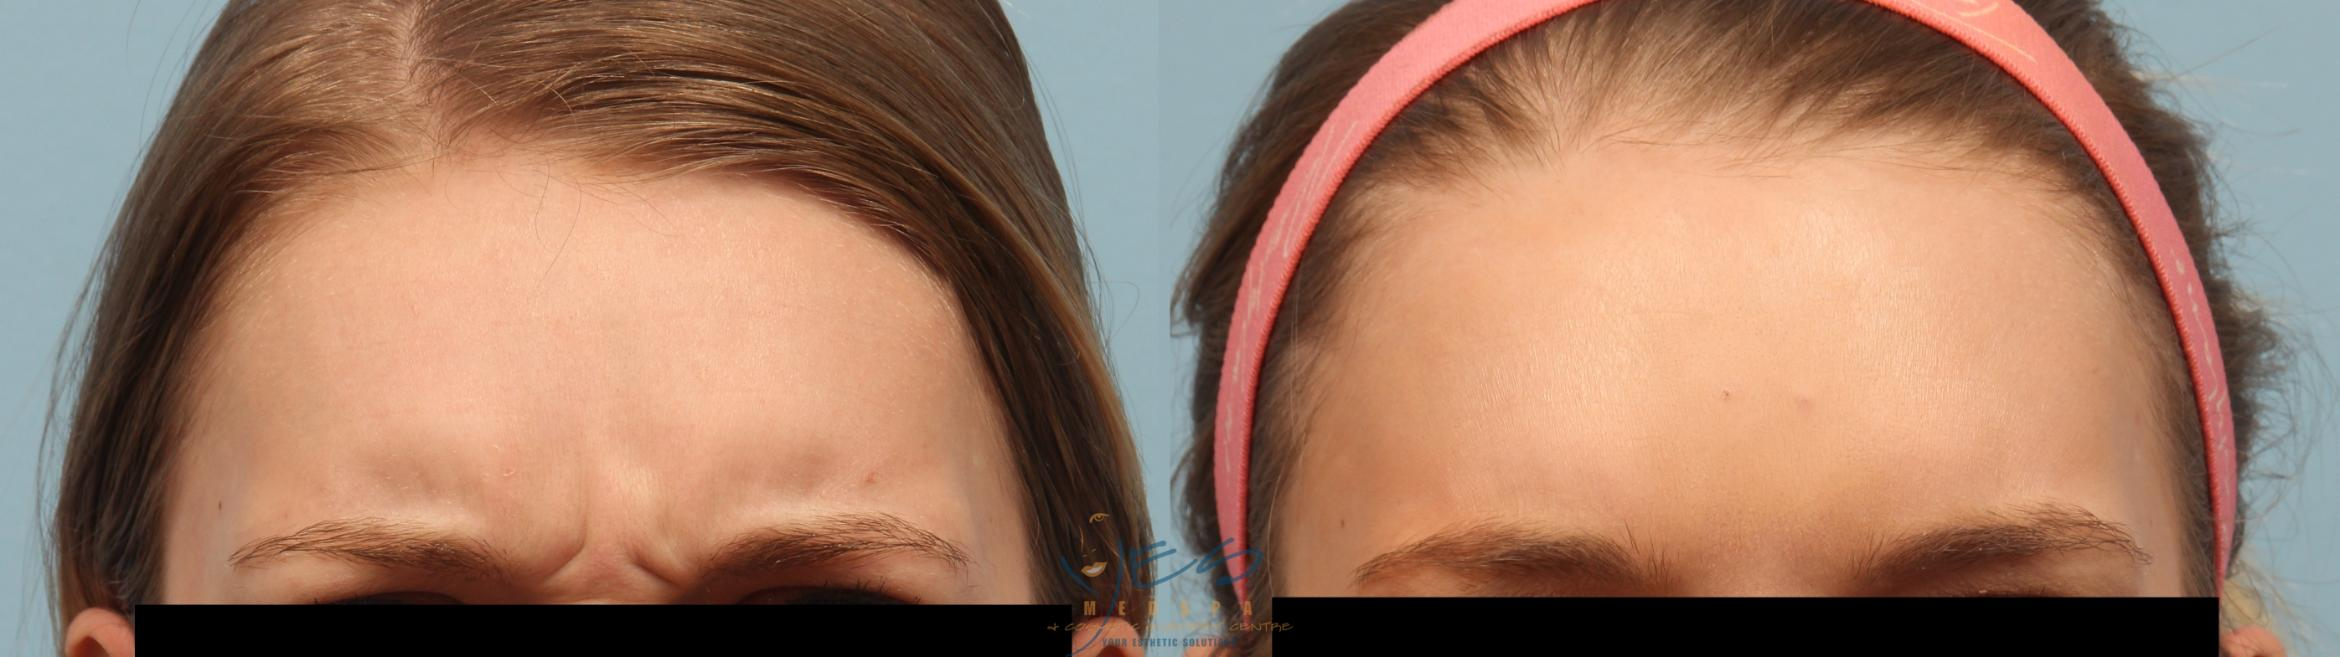 BOTOX COSMETIC® Treatments Case 250 Before & After Frown | Langley, BC | YES Medspa & Cosmetic Surgery Centre